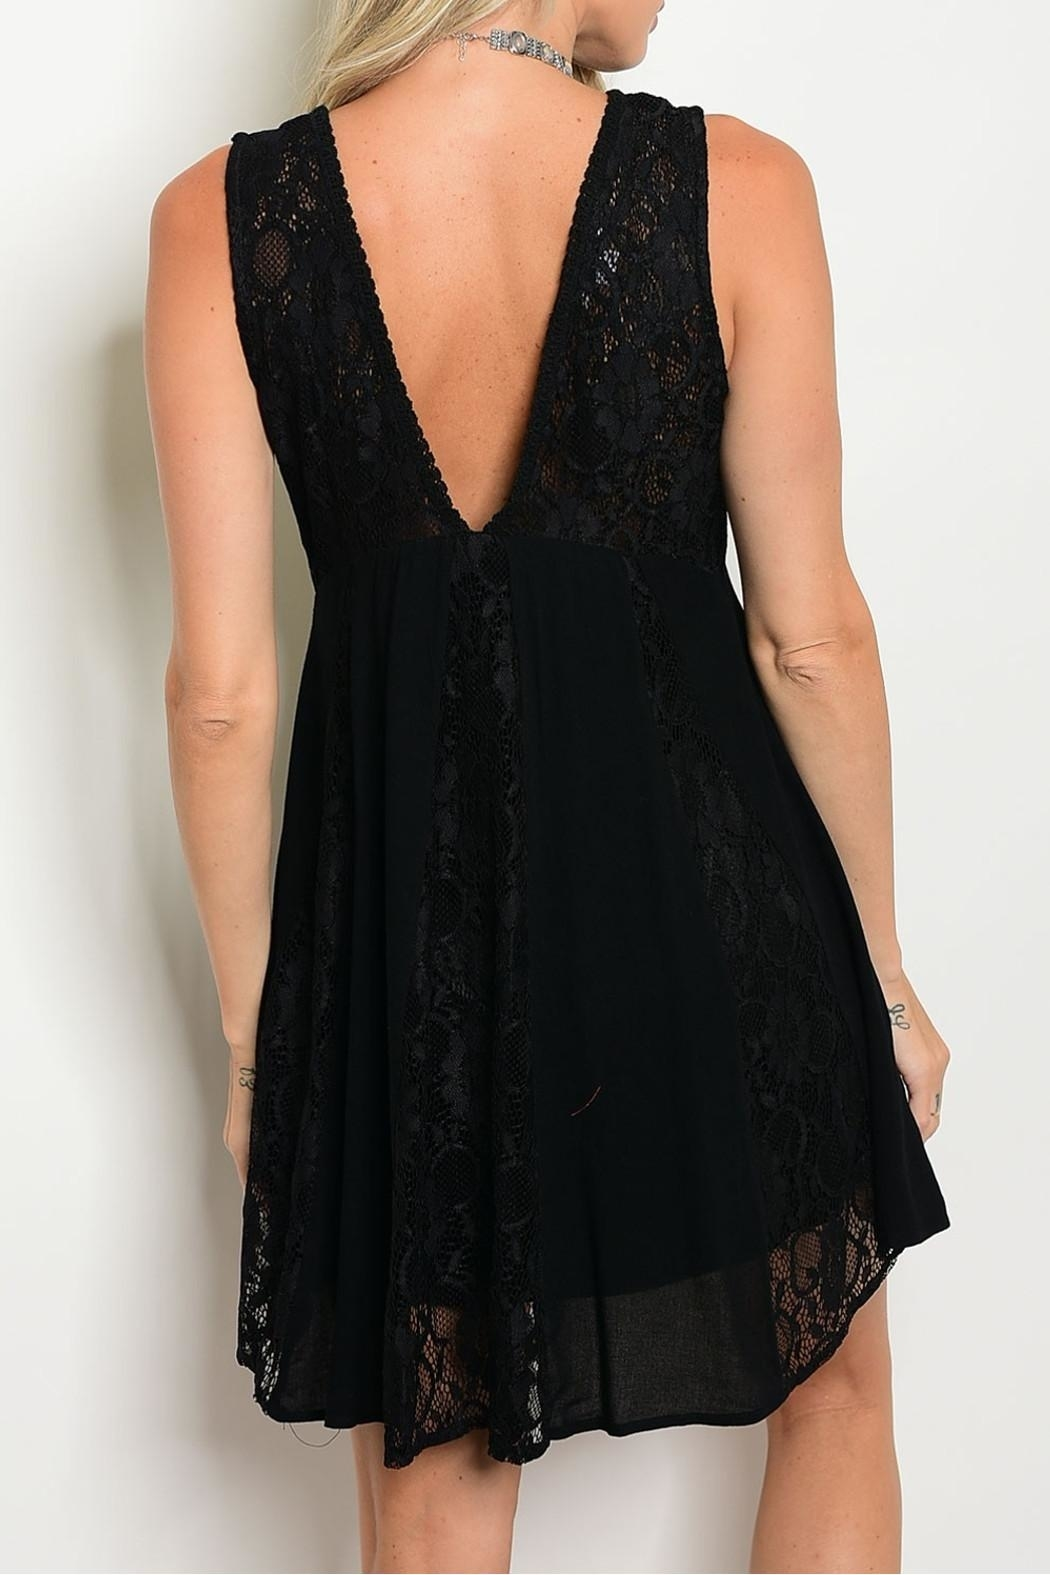 LoveRiche Black Lace Dress - Front Full Image